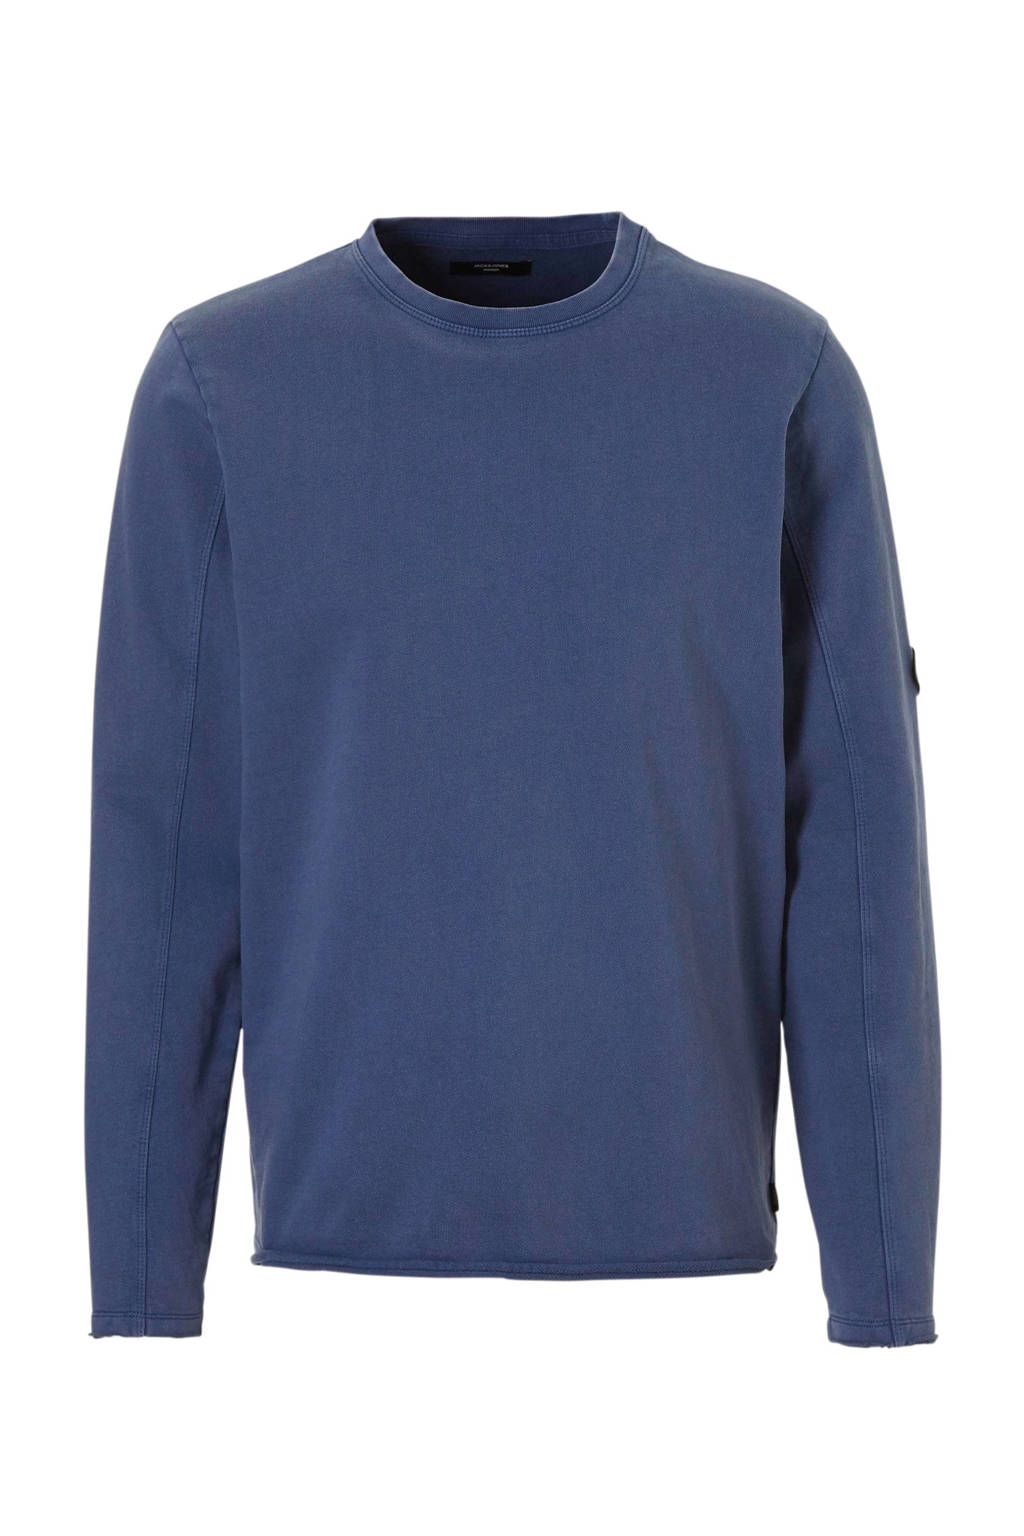 Jack & Jones Premium sweater, Blauw